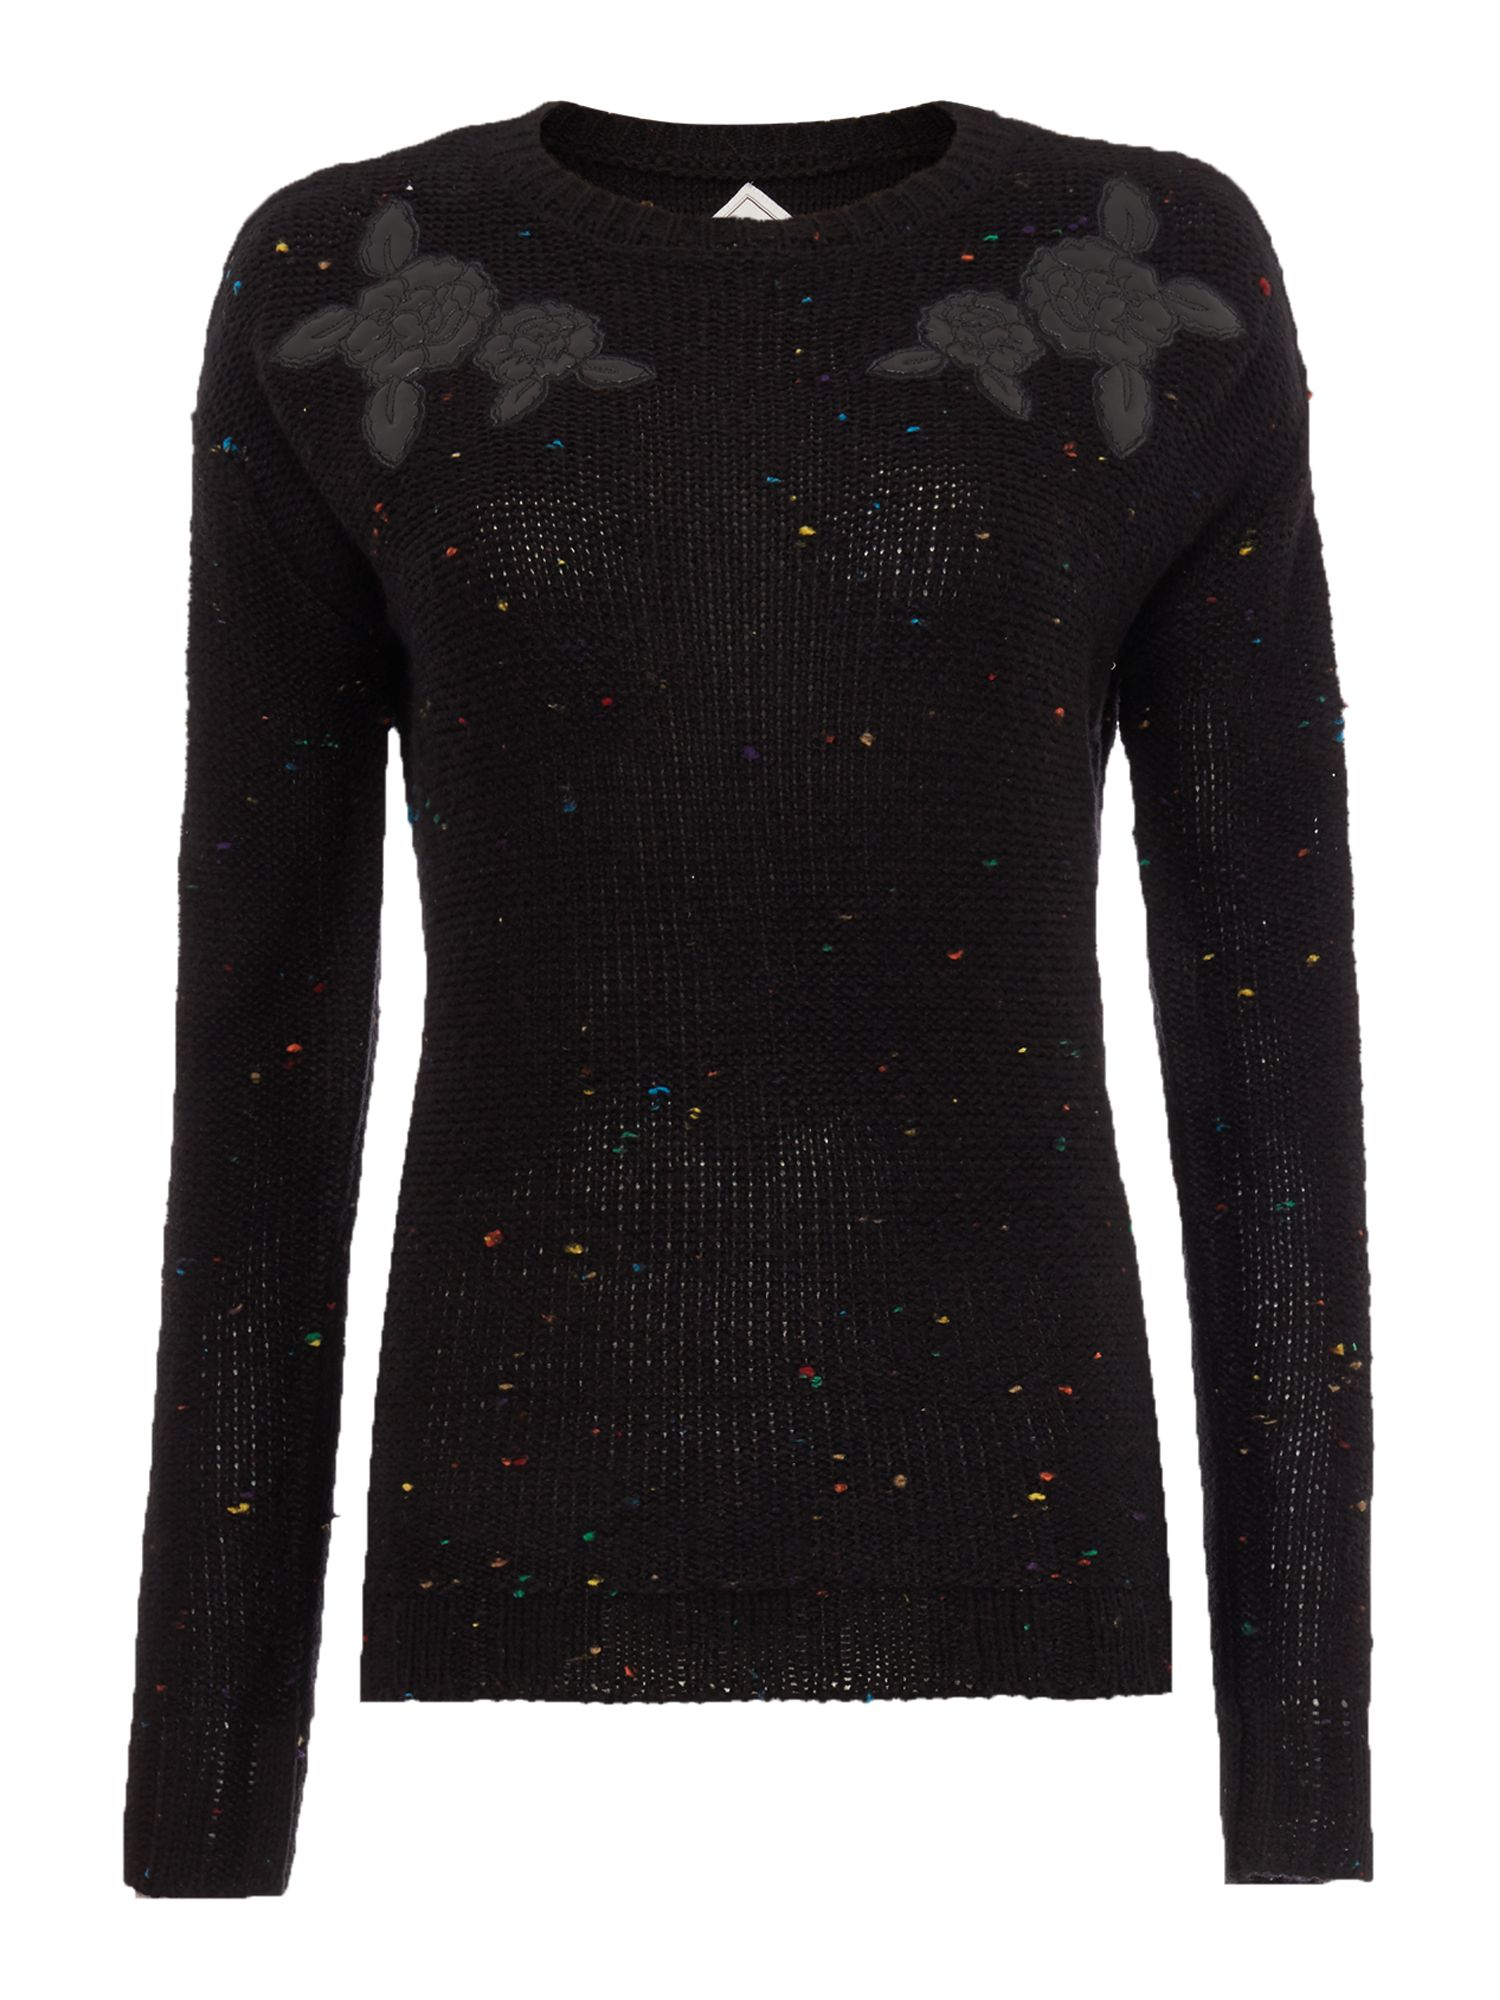 Chunky Knit Jumper Pattern : Bellfield Pu Pattern Chunky Knit Jumper in Black Lyst